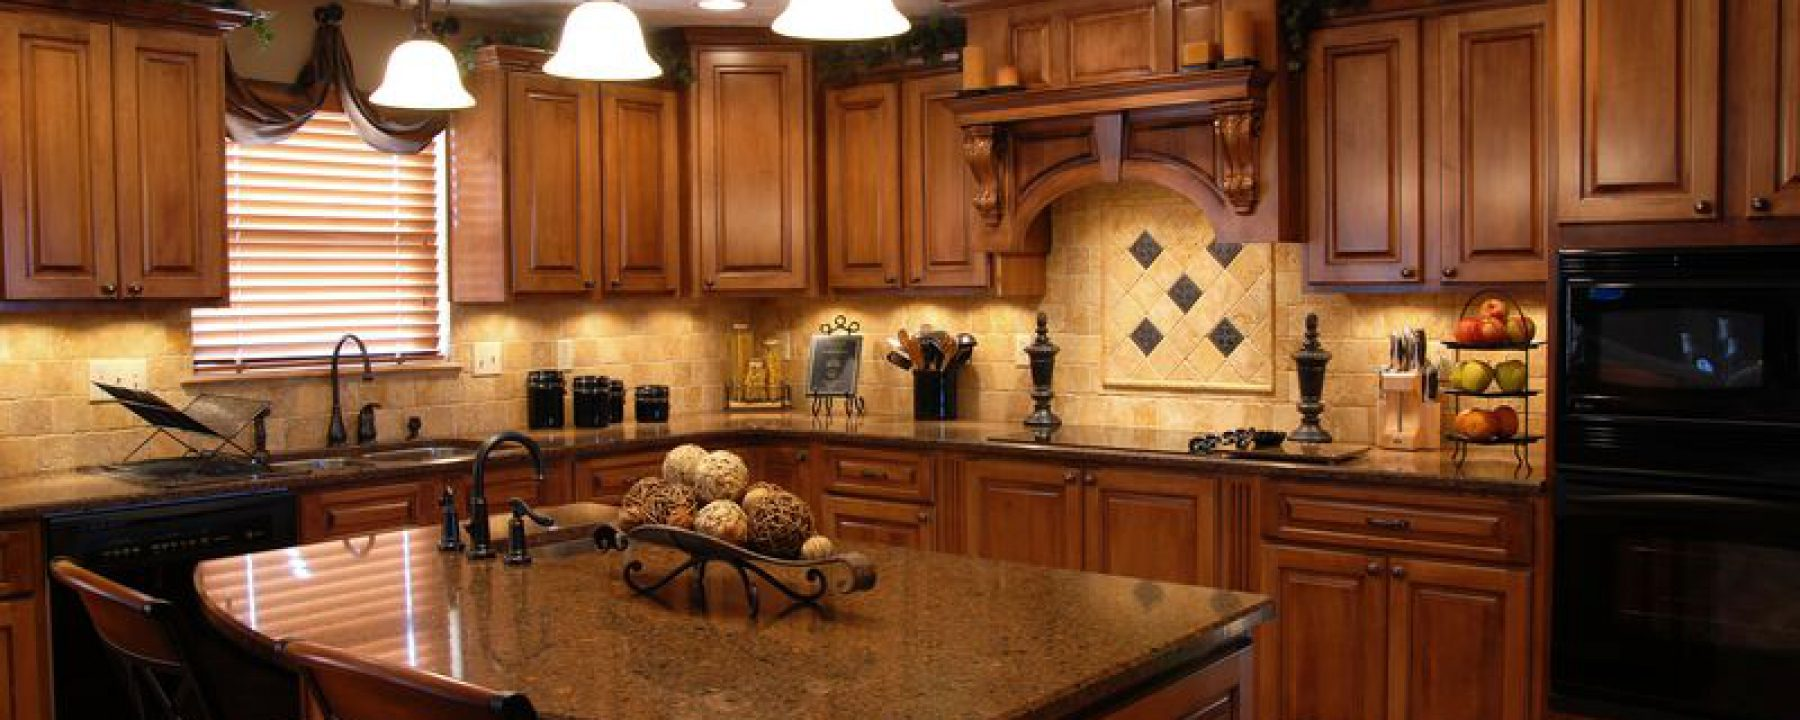 Cropped Kitchen Cabinets Traditional Medium Wood Golden Brown 004a S8919676 Wood Hood Island Luxury Jpg